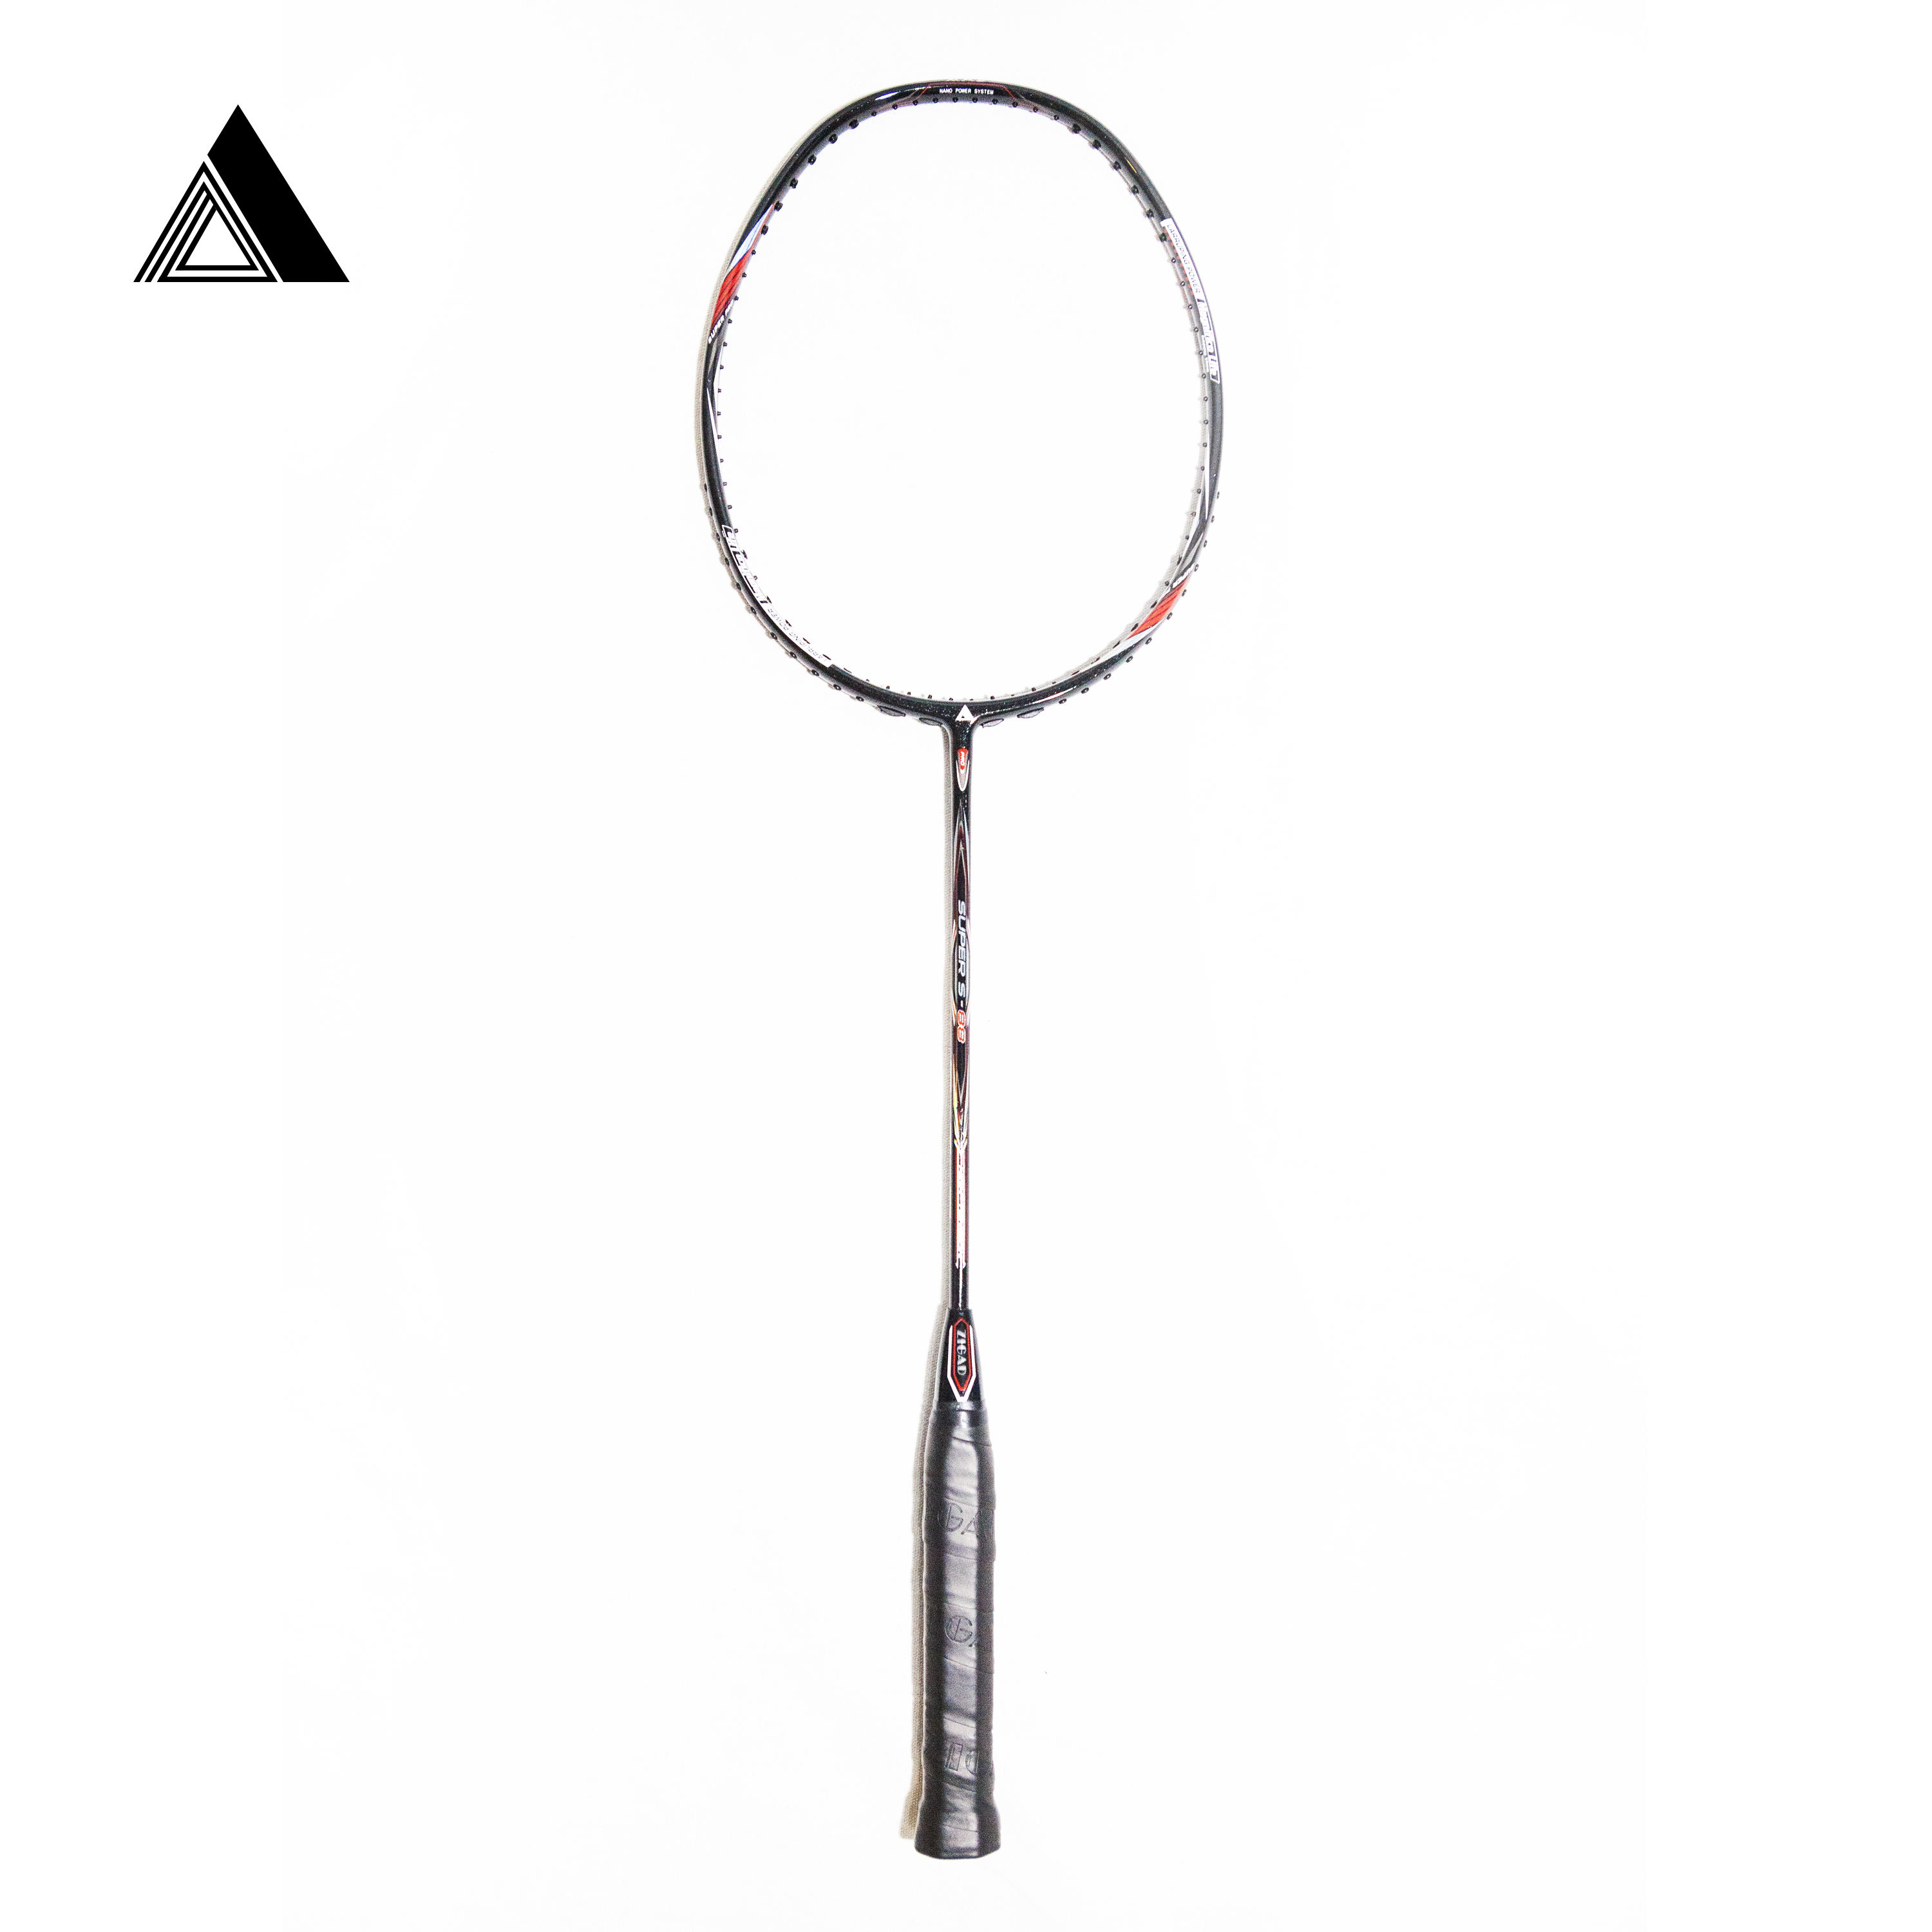 New product SUPER S-88n ZHIGAO Badminton Racket Carbo